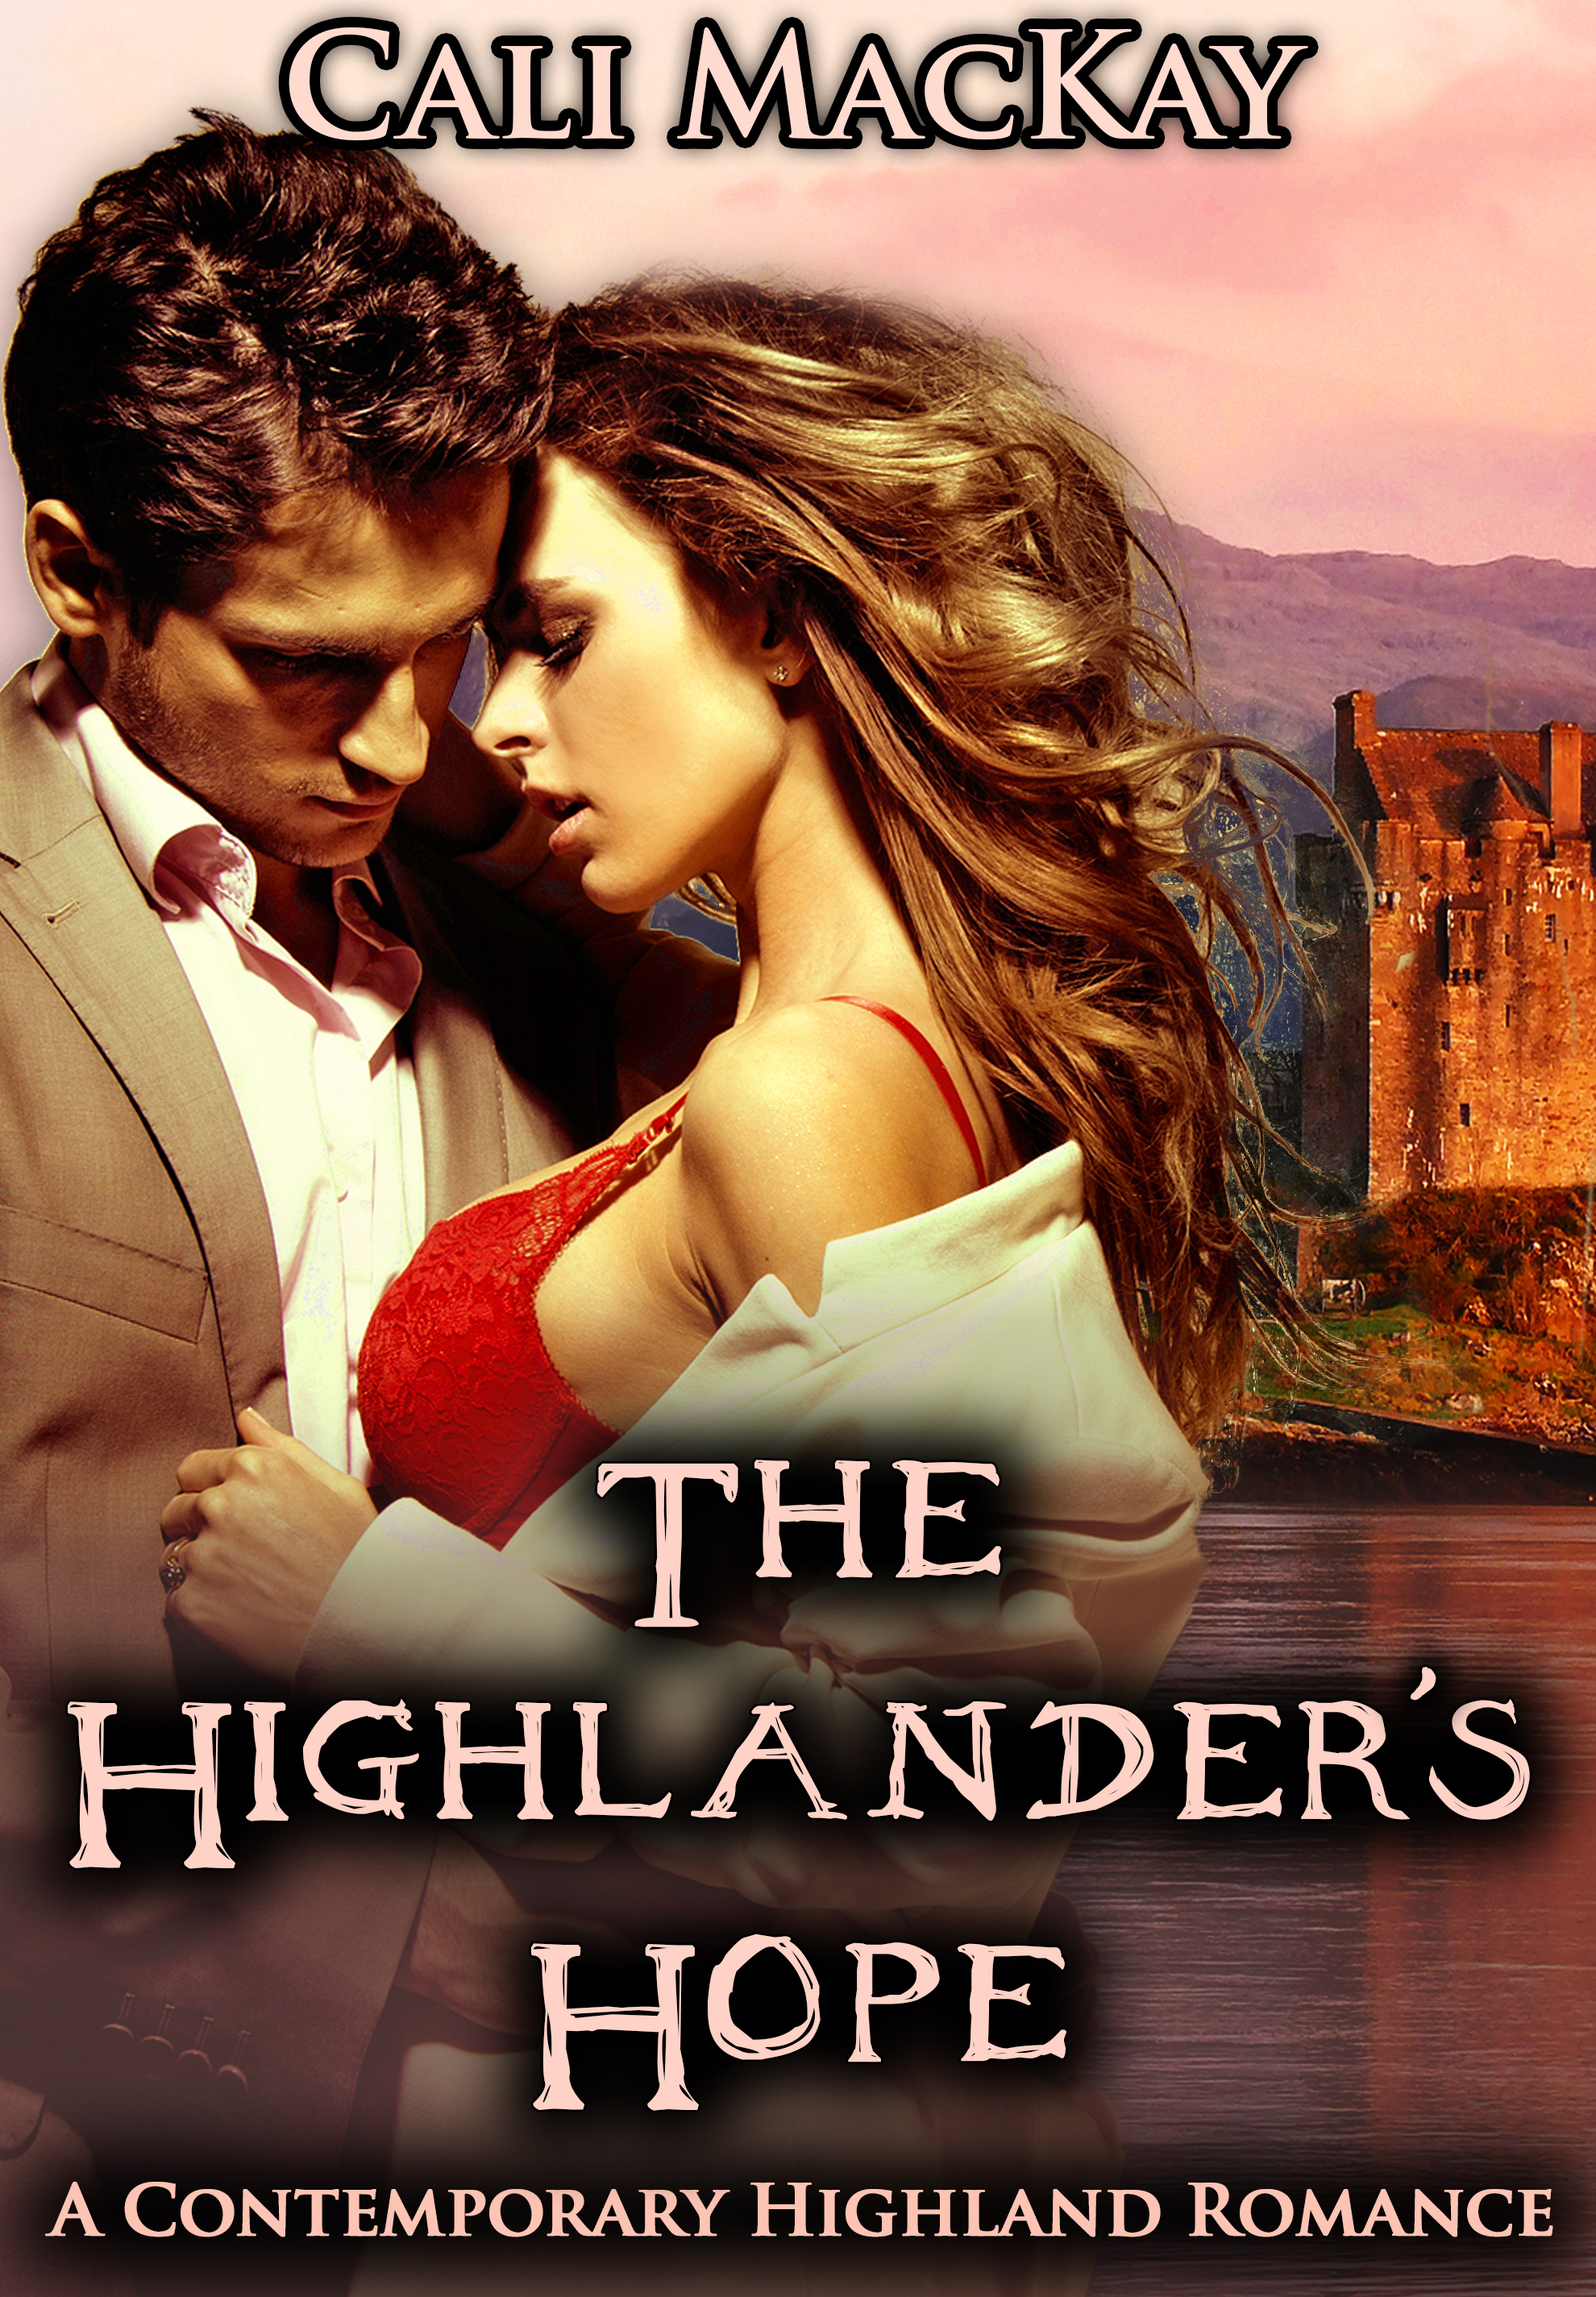 The Highlander's Hope: A Contemporary Highland Romance